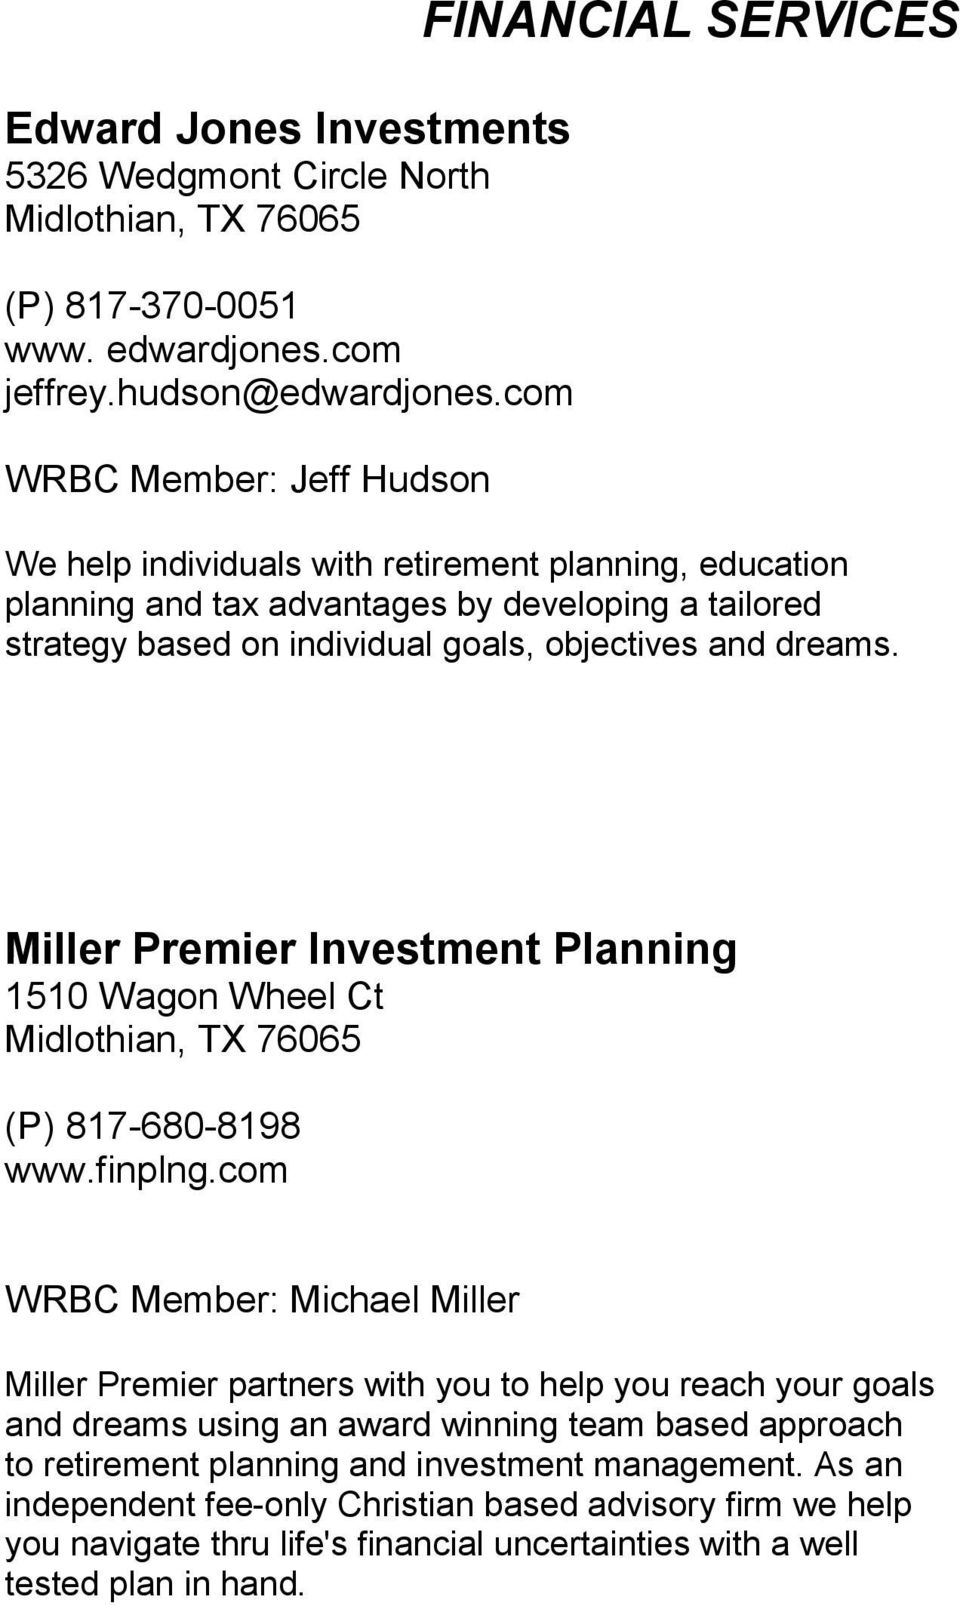 objectives and dreams. Miller Premier Investment Planning 1510 Wagon Wheel Ct Midlothian, TX 76065 (P) 817-680-8198 www.finplng.